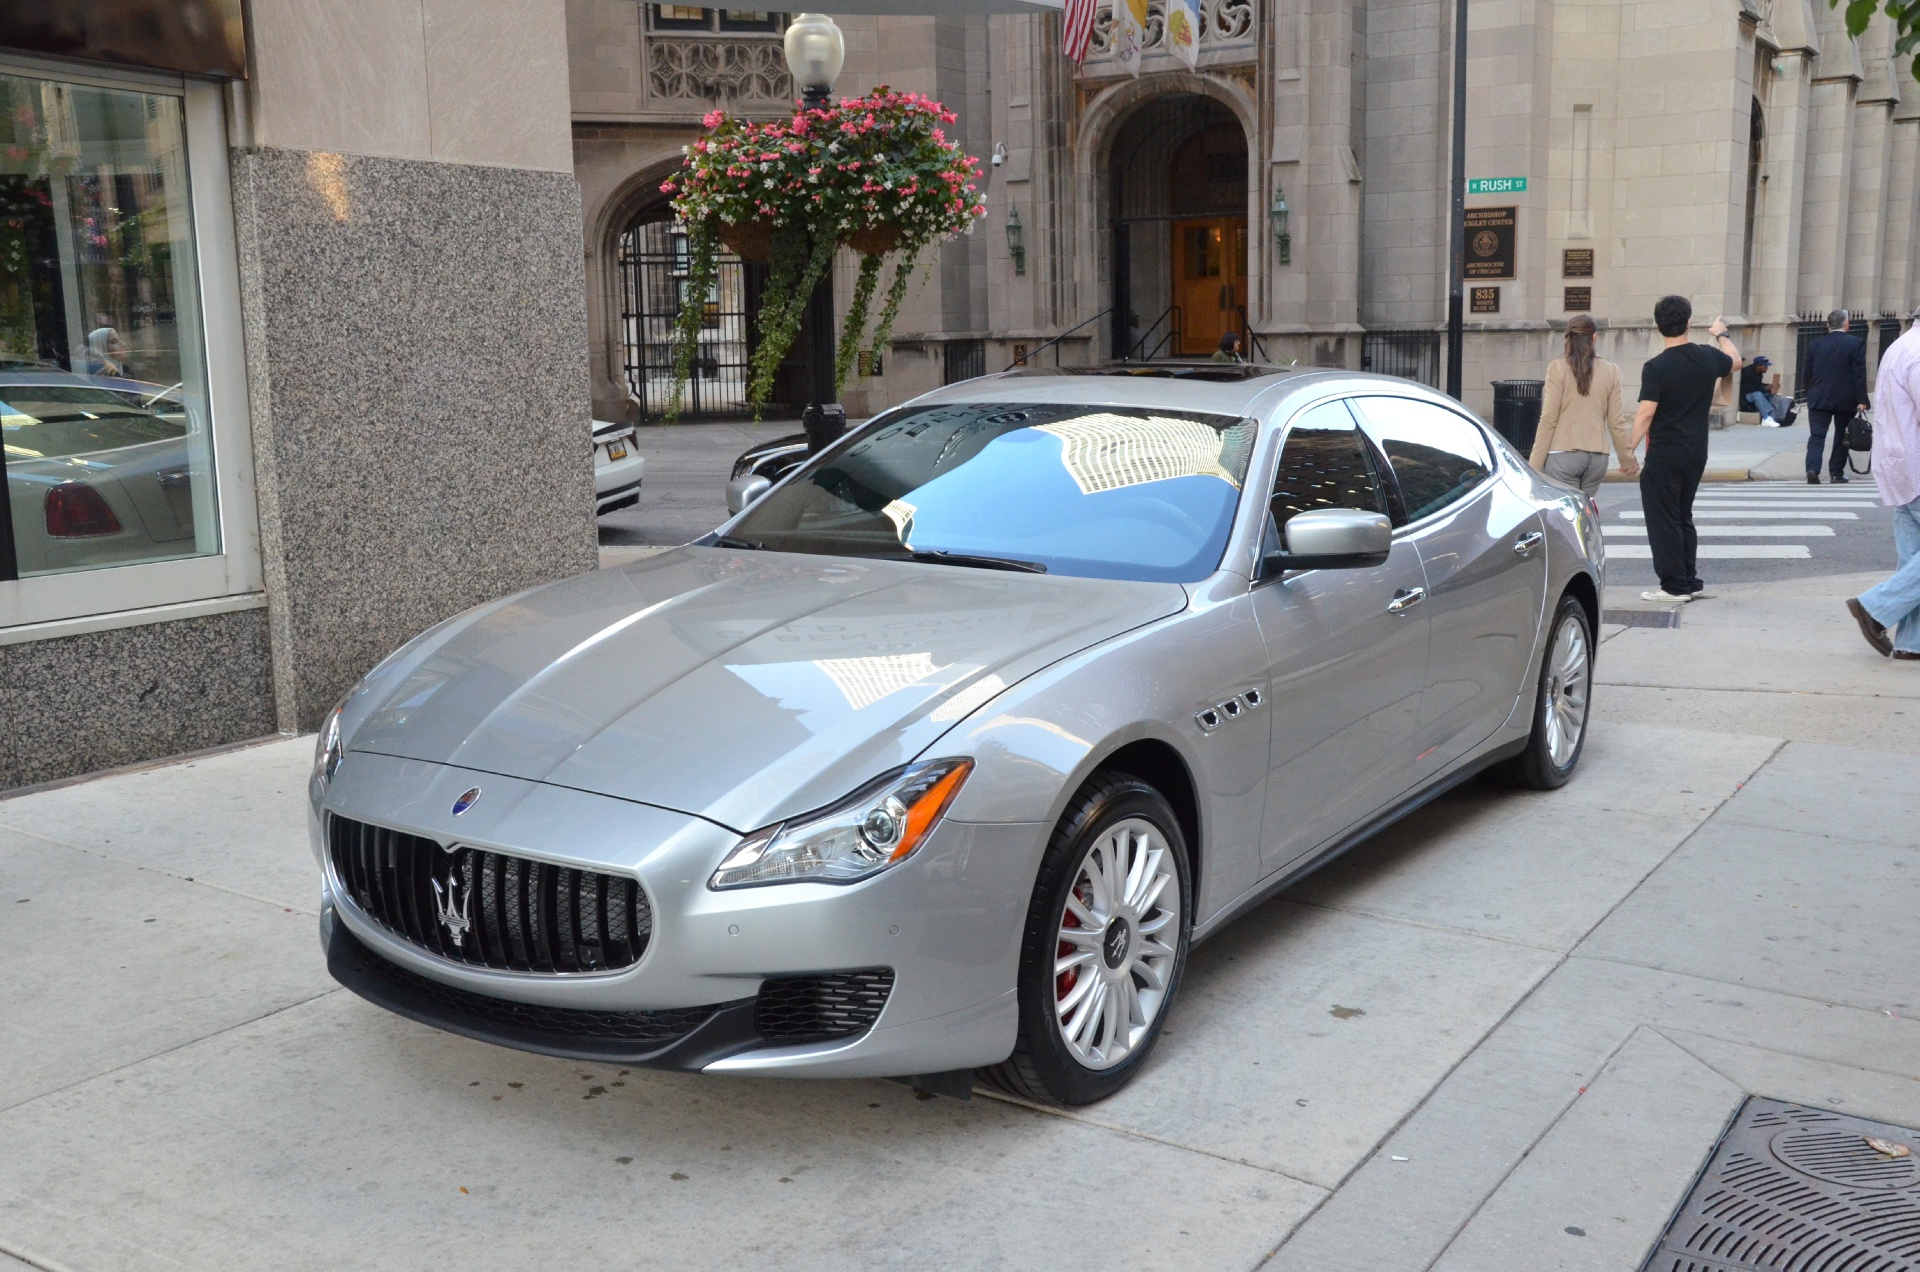 2014 maserati quattroporte s q4 s q4 stock m178 for sale near chicago il il maserati dealer. Black Bedroom Furniture Sets. Home Design Ideas